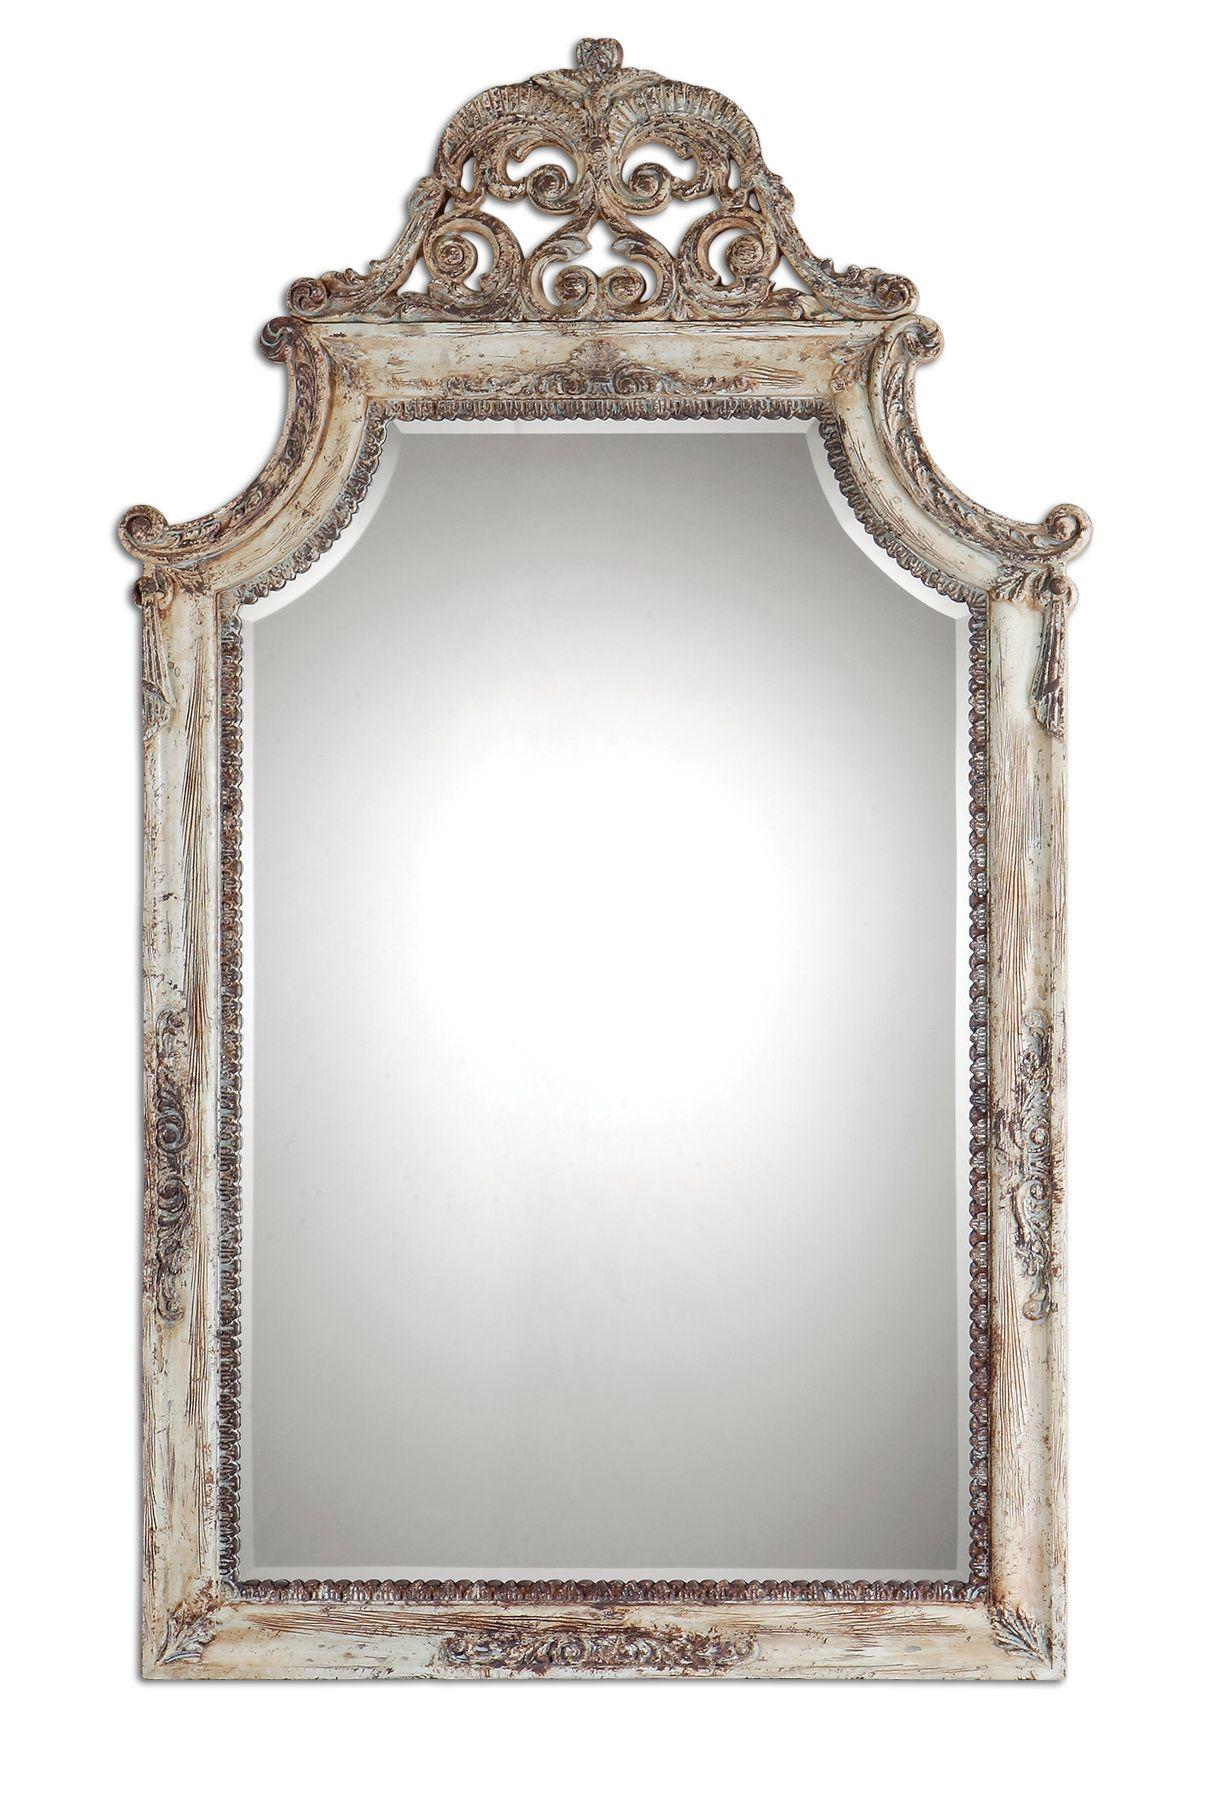 Uttermost Mirrors Portici Mirror - Item Number: 09516